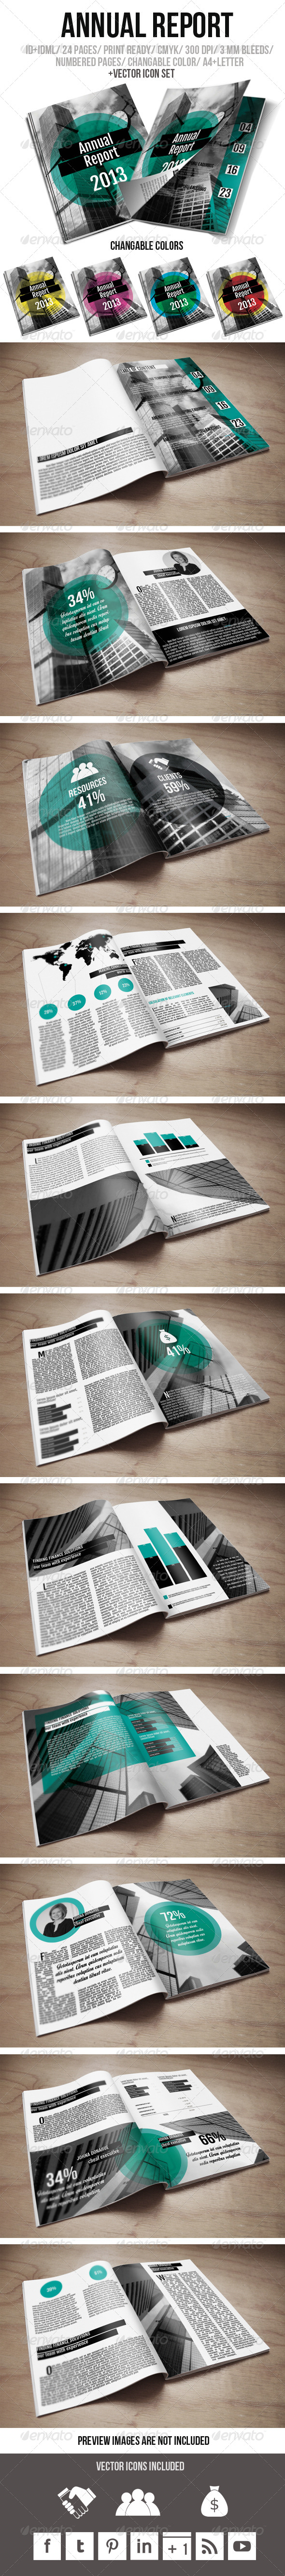 GraphicRiver Annual Report Brochure 6119288